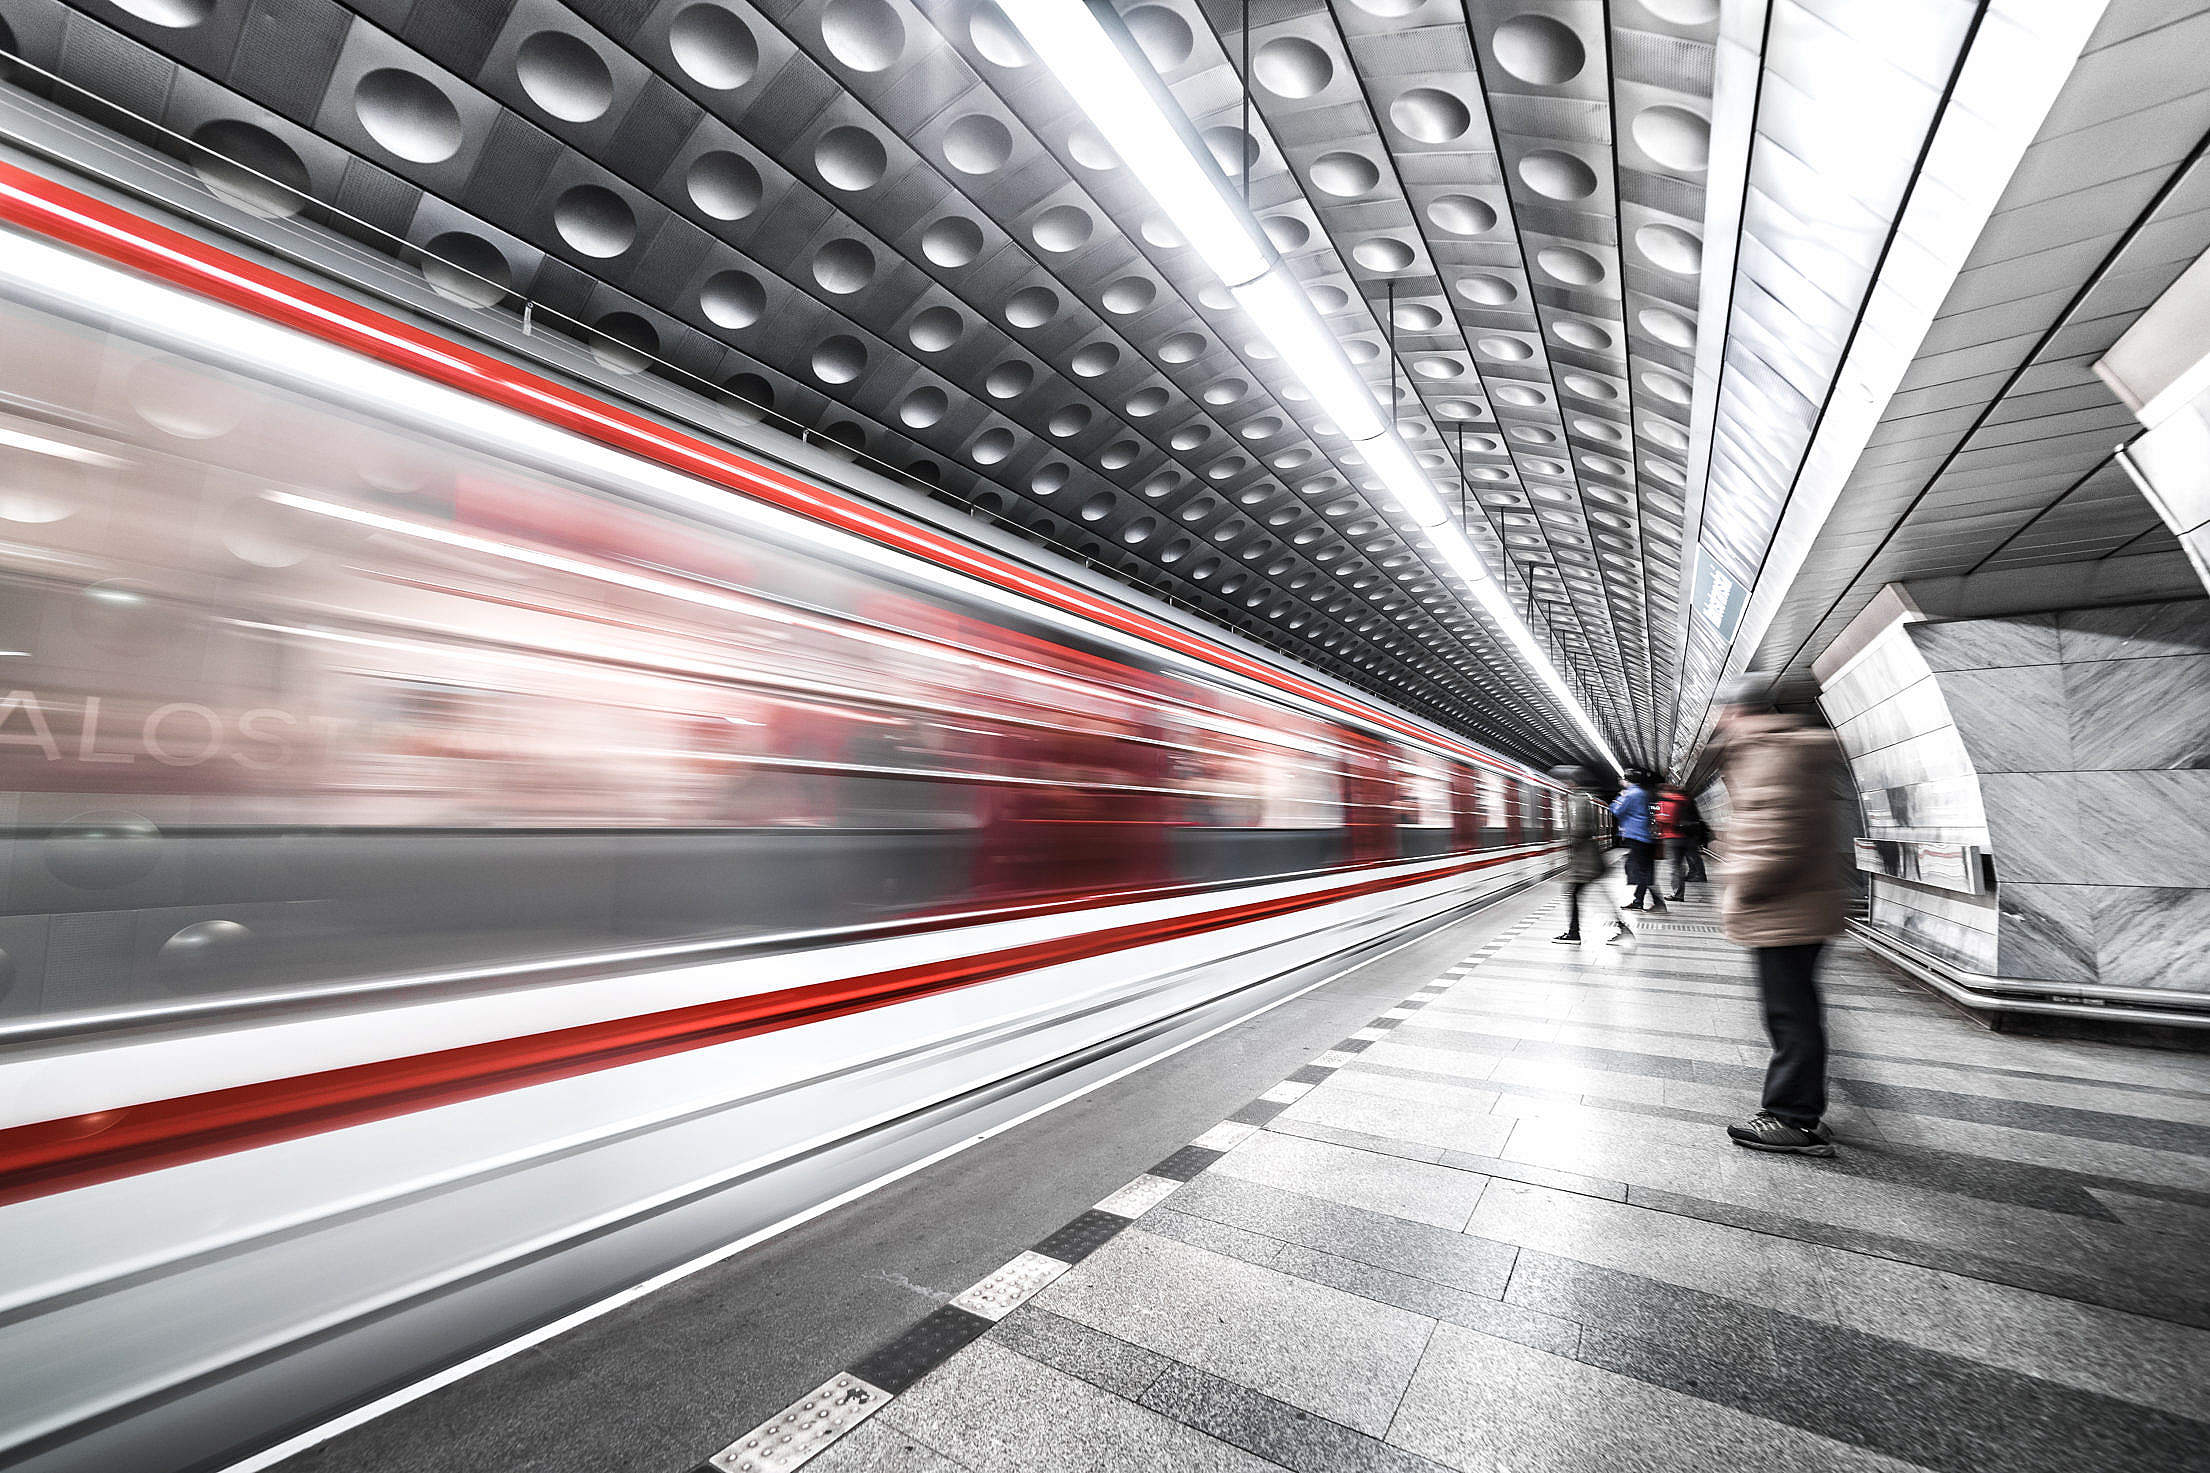 Prague Metro Underground Subway Station Free Stock Photo